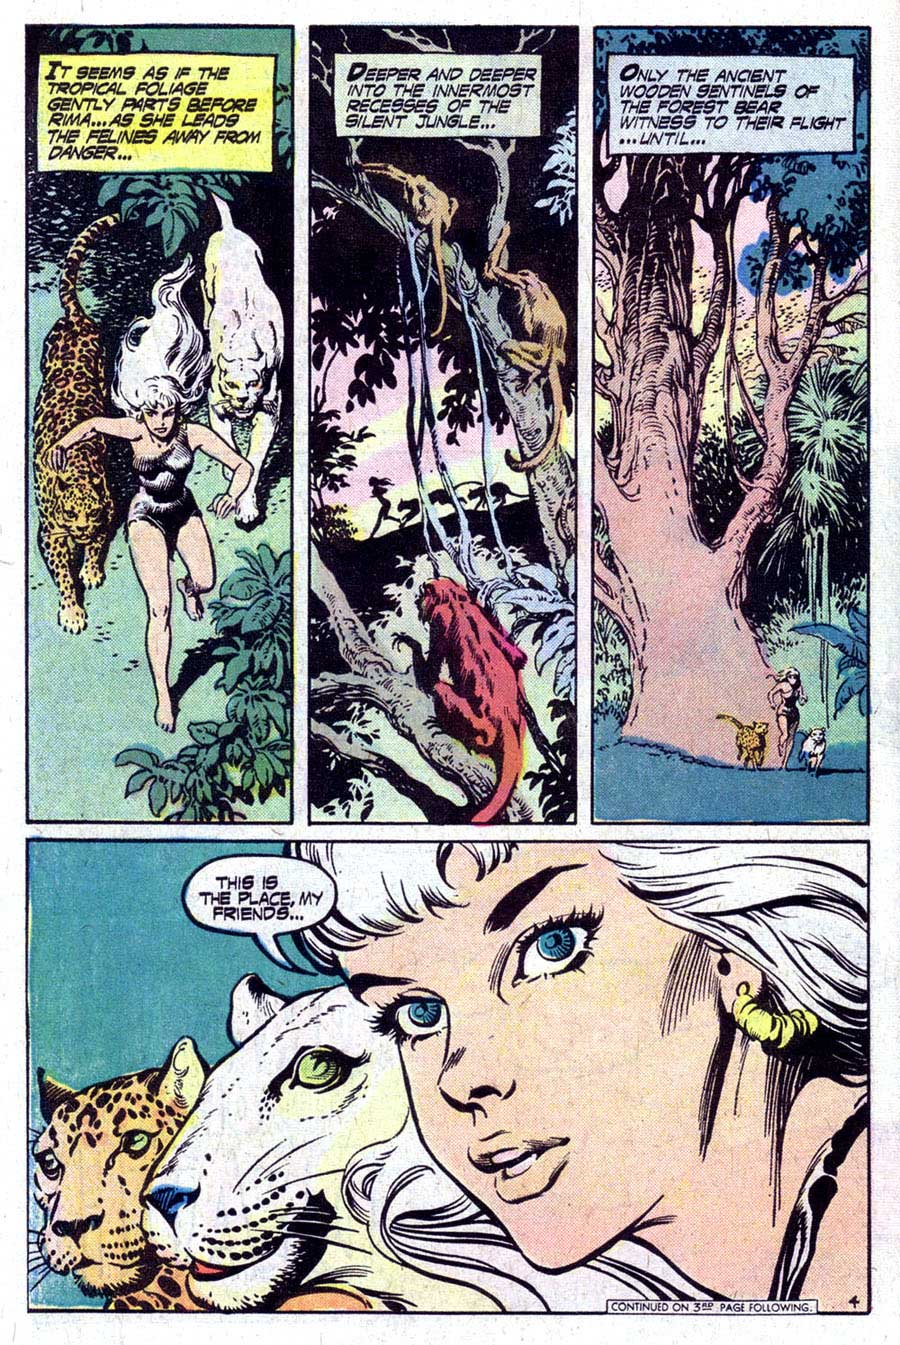 Rima the Jungle Girl v1 #6 dc bronze age comic book page art by Nestor Redondo